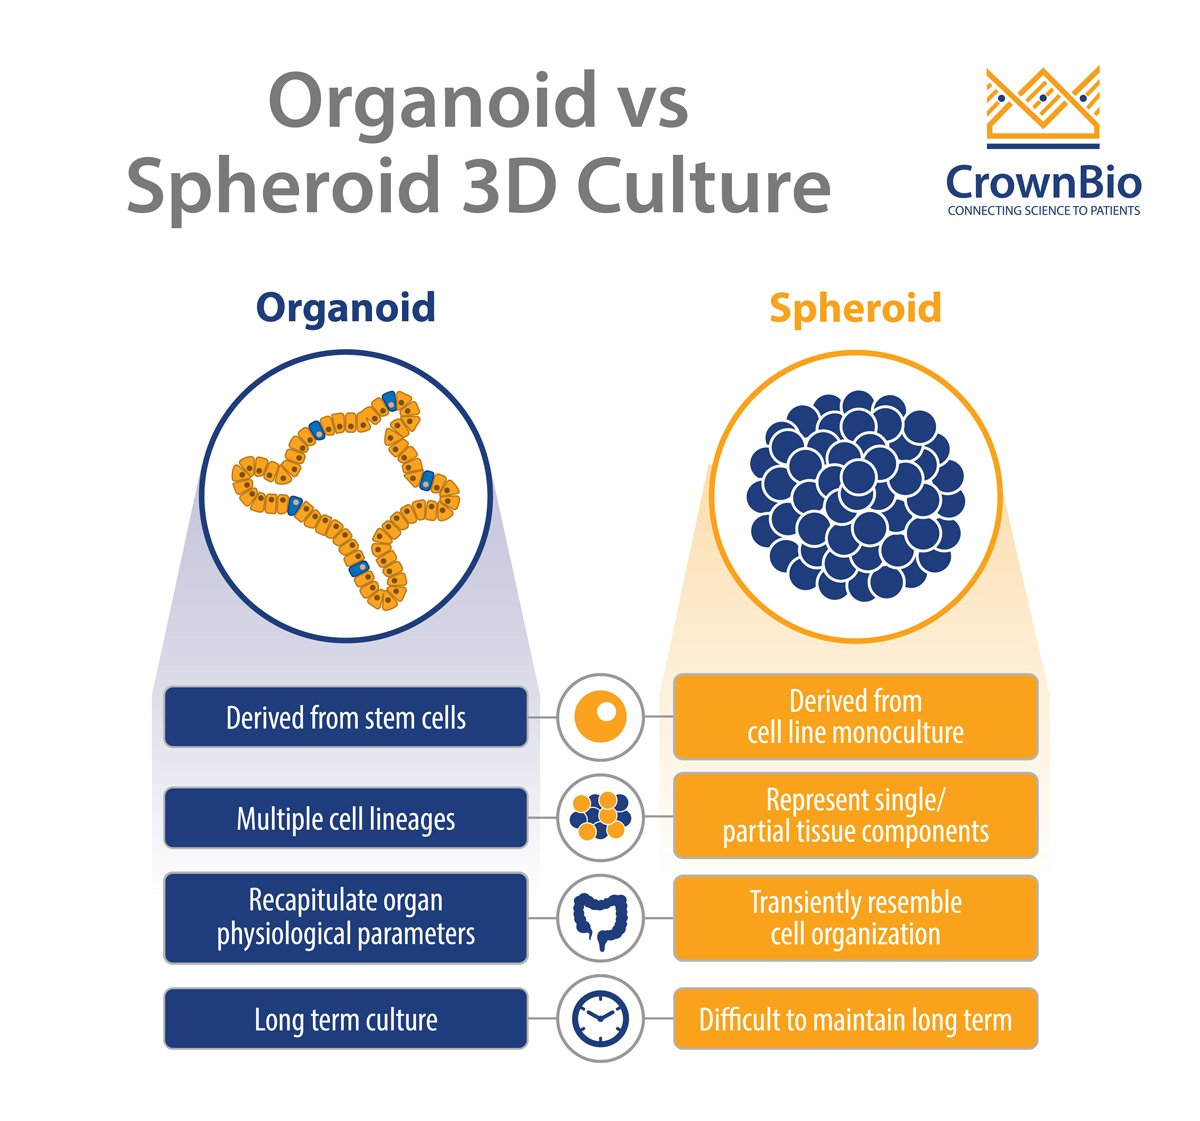 How are Organoids Different from Spheroids?